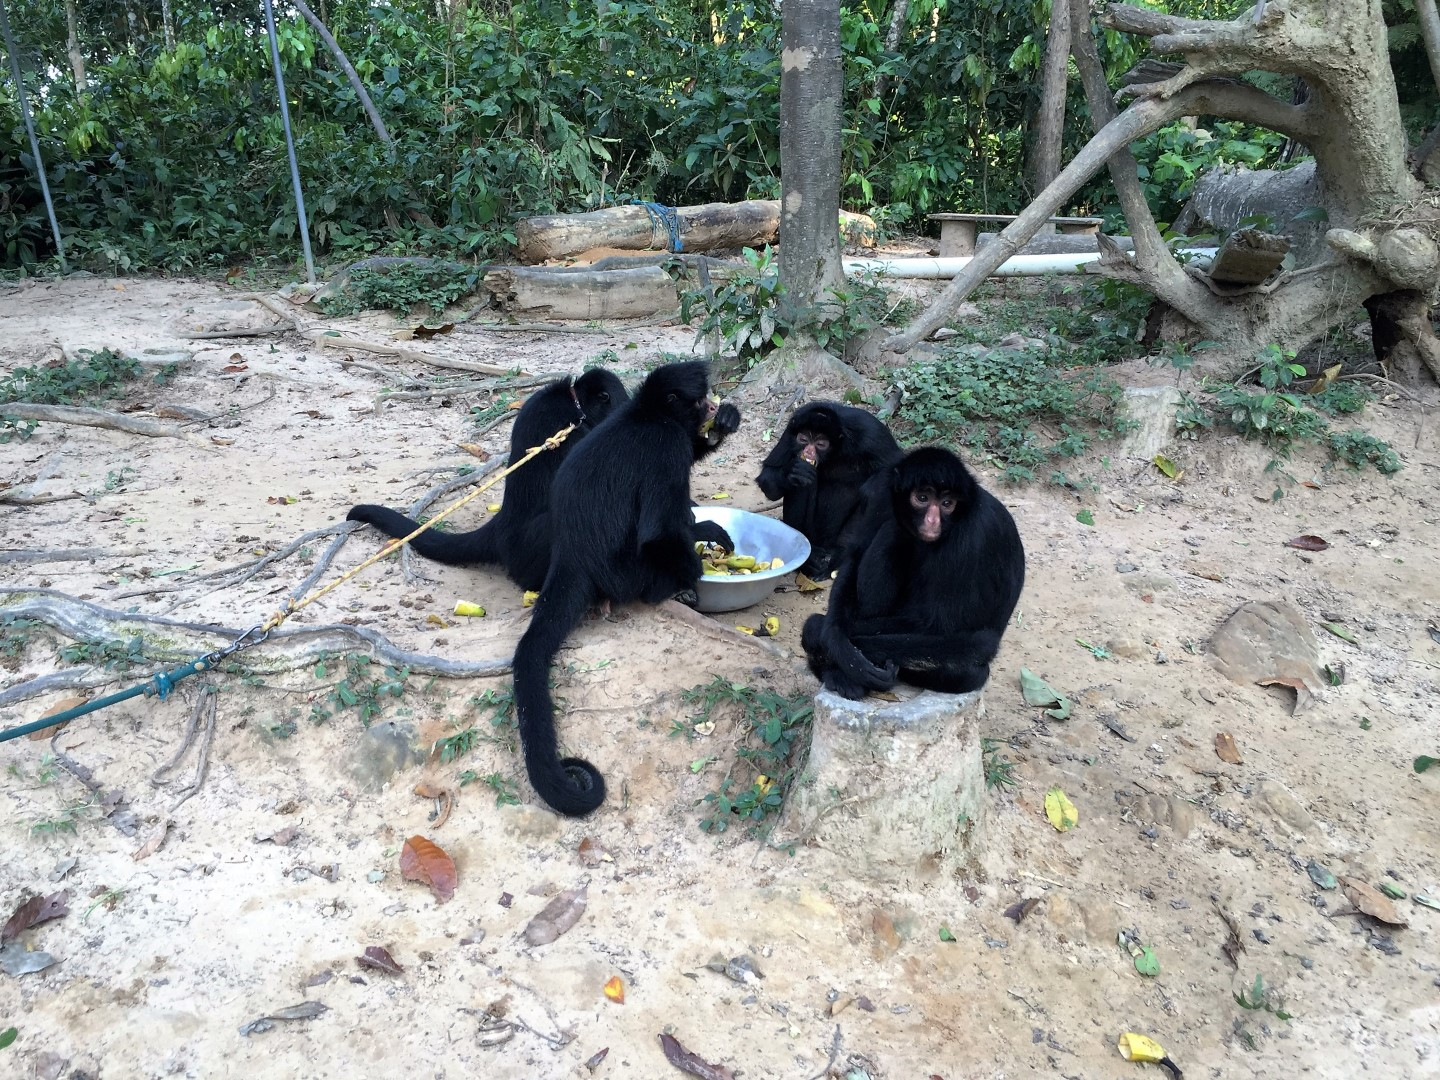 Spidermonkey breakfast